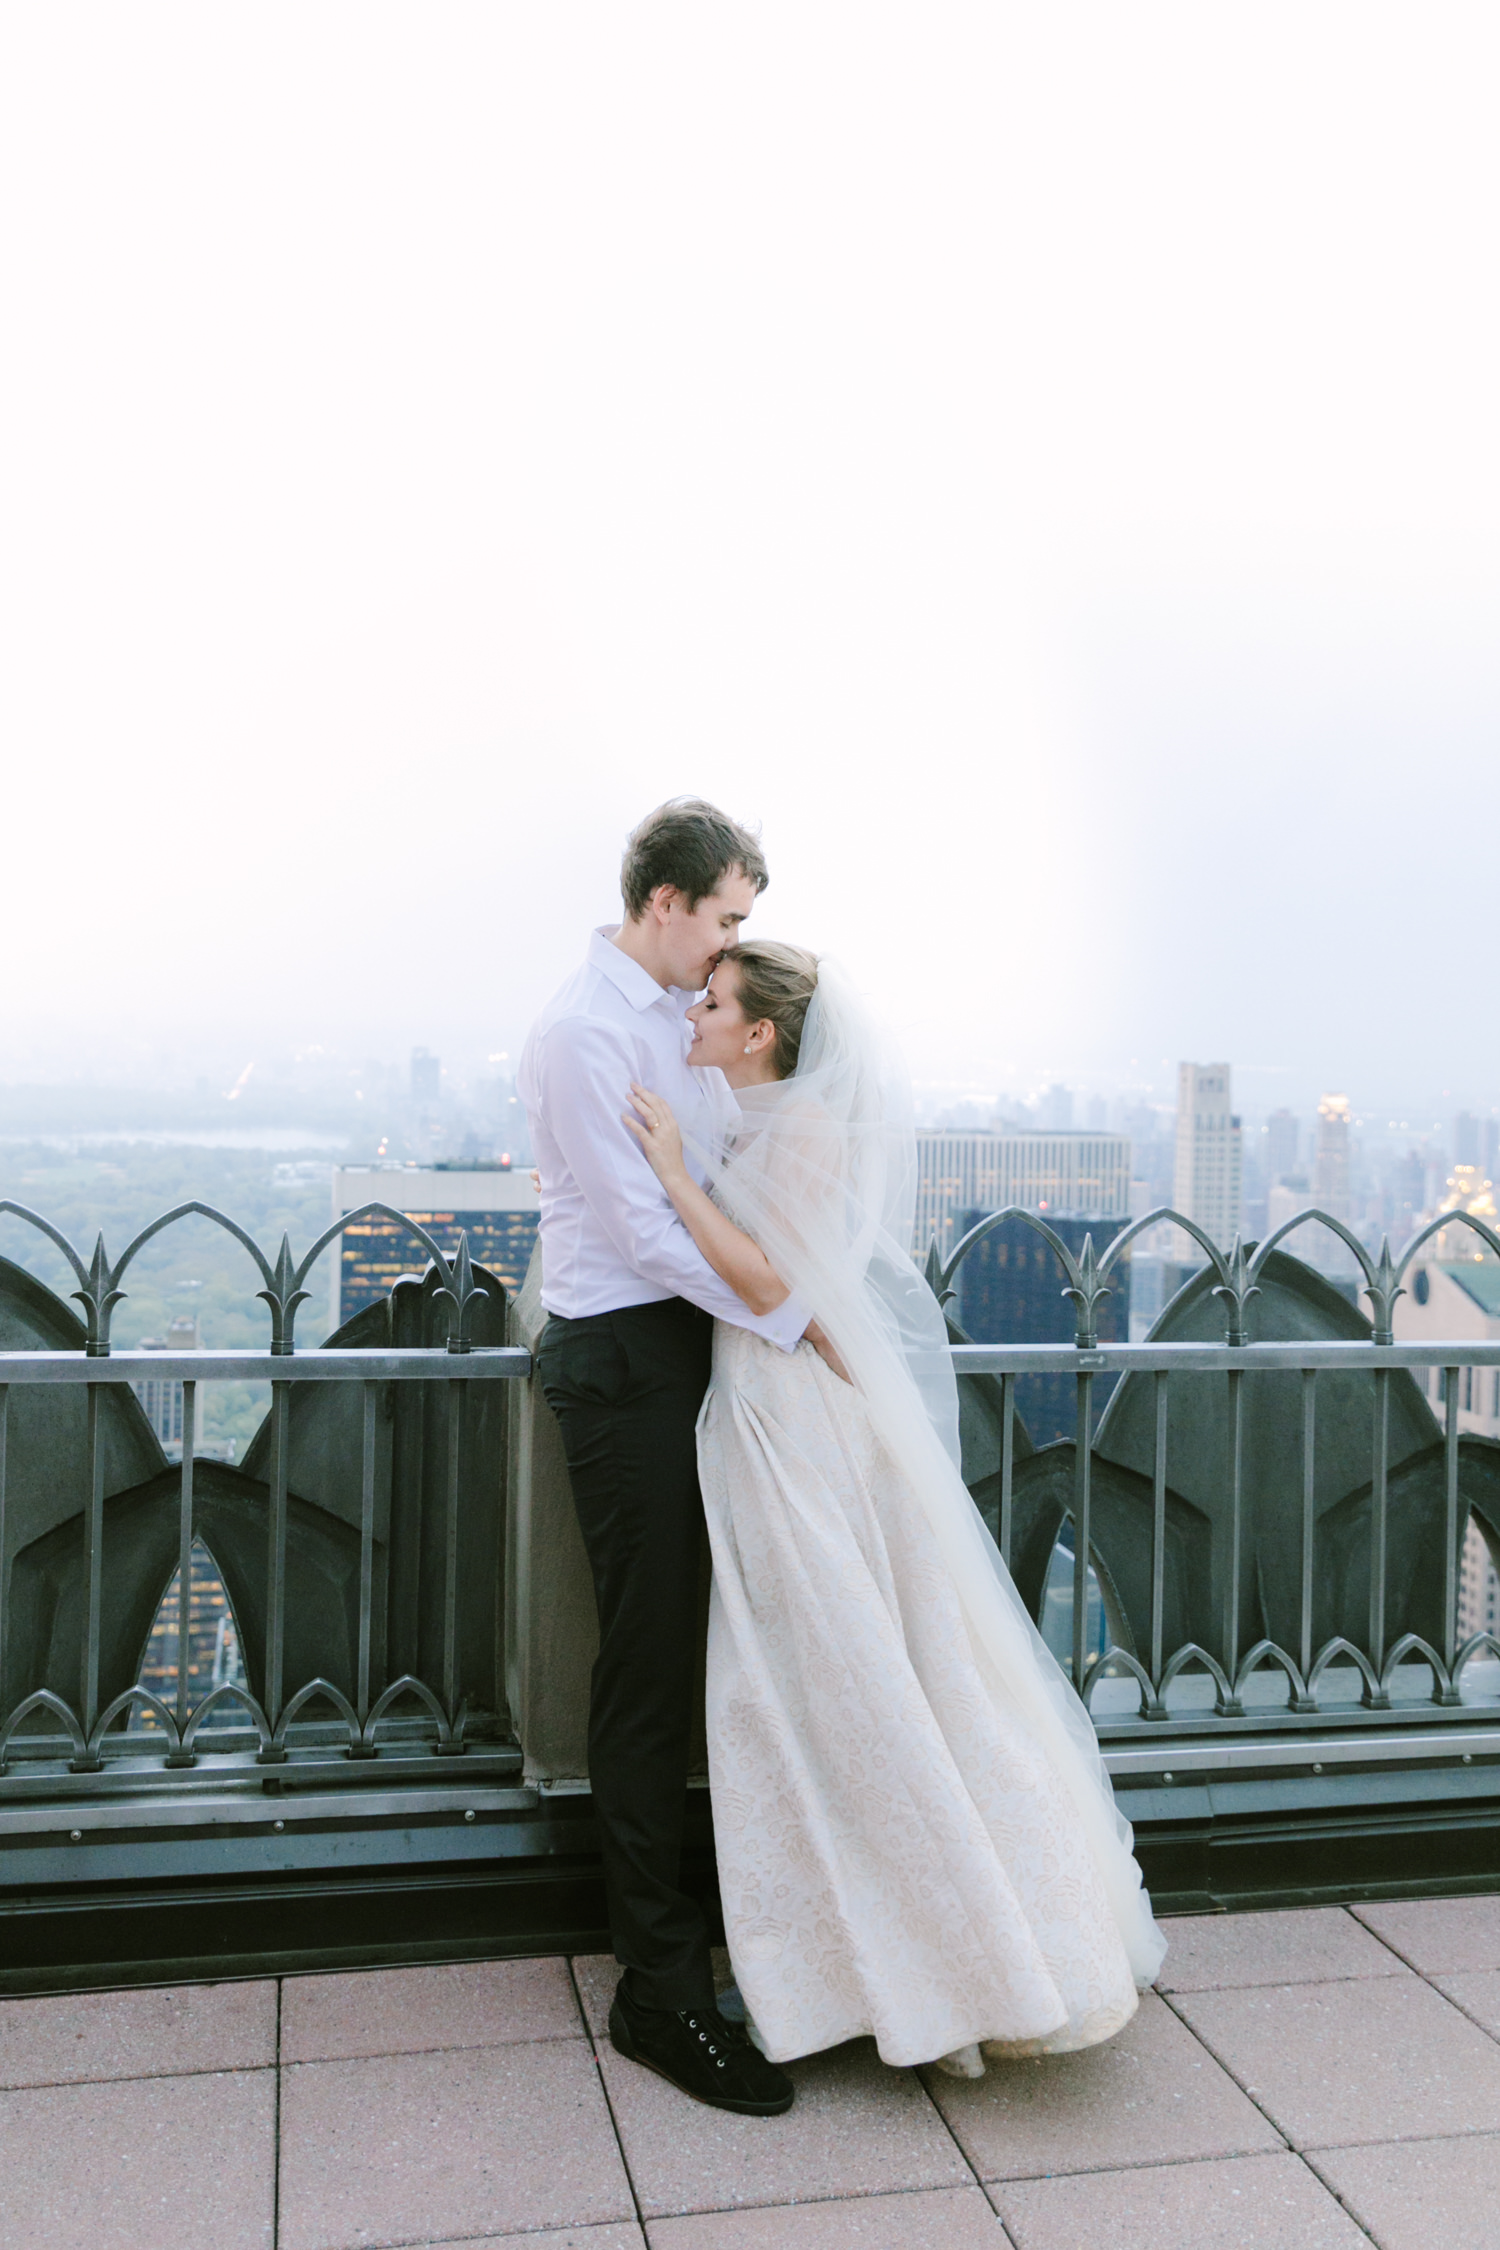 NYC-Top-of-the-Rock-wedding-photos-L&B-23.jpg